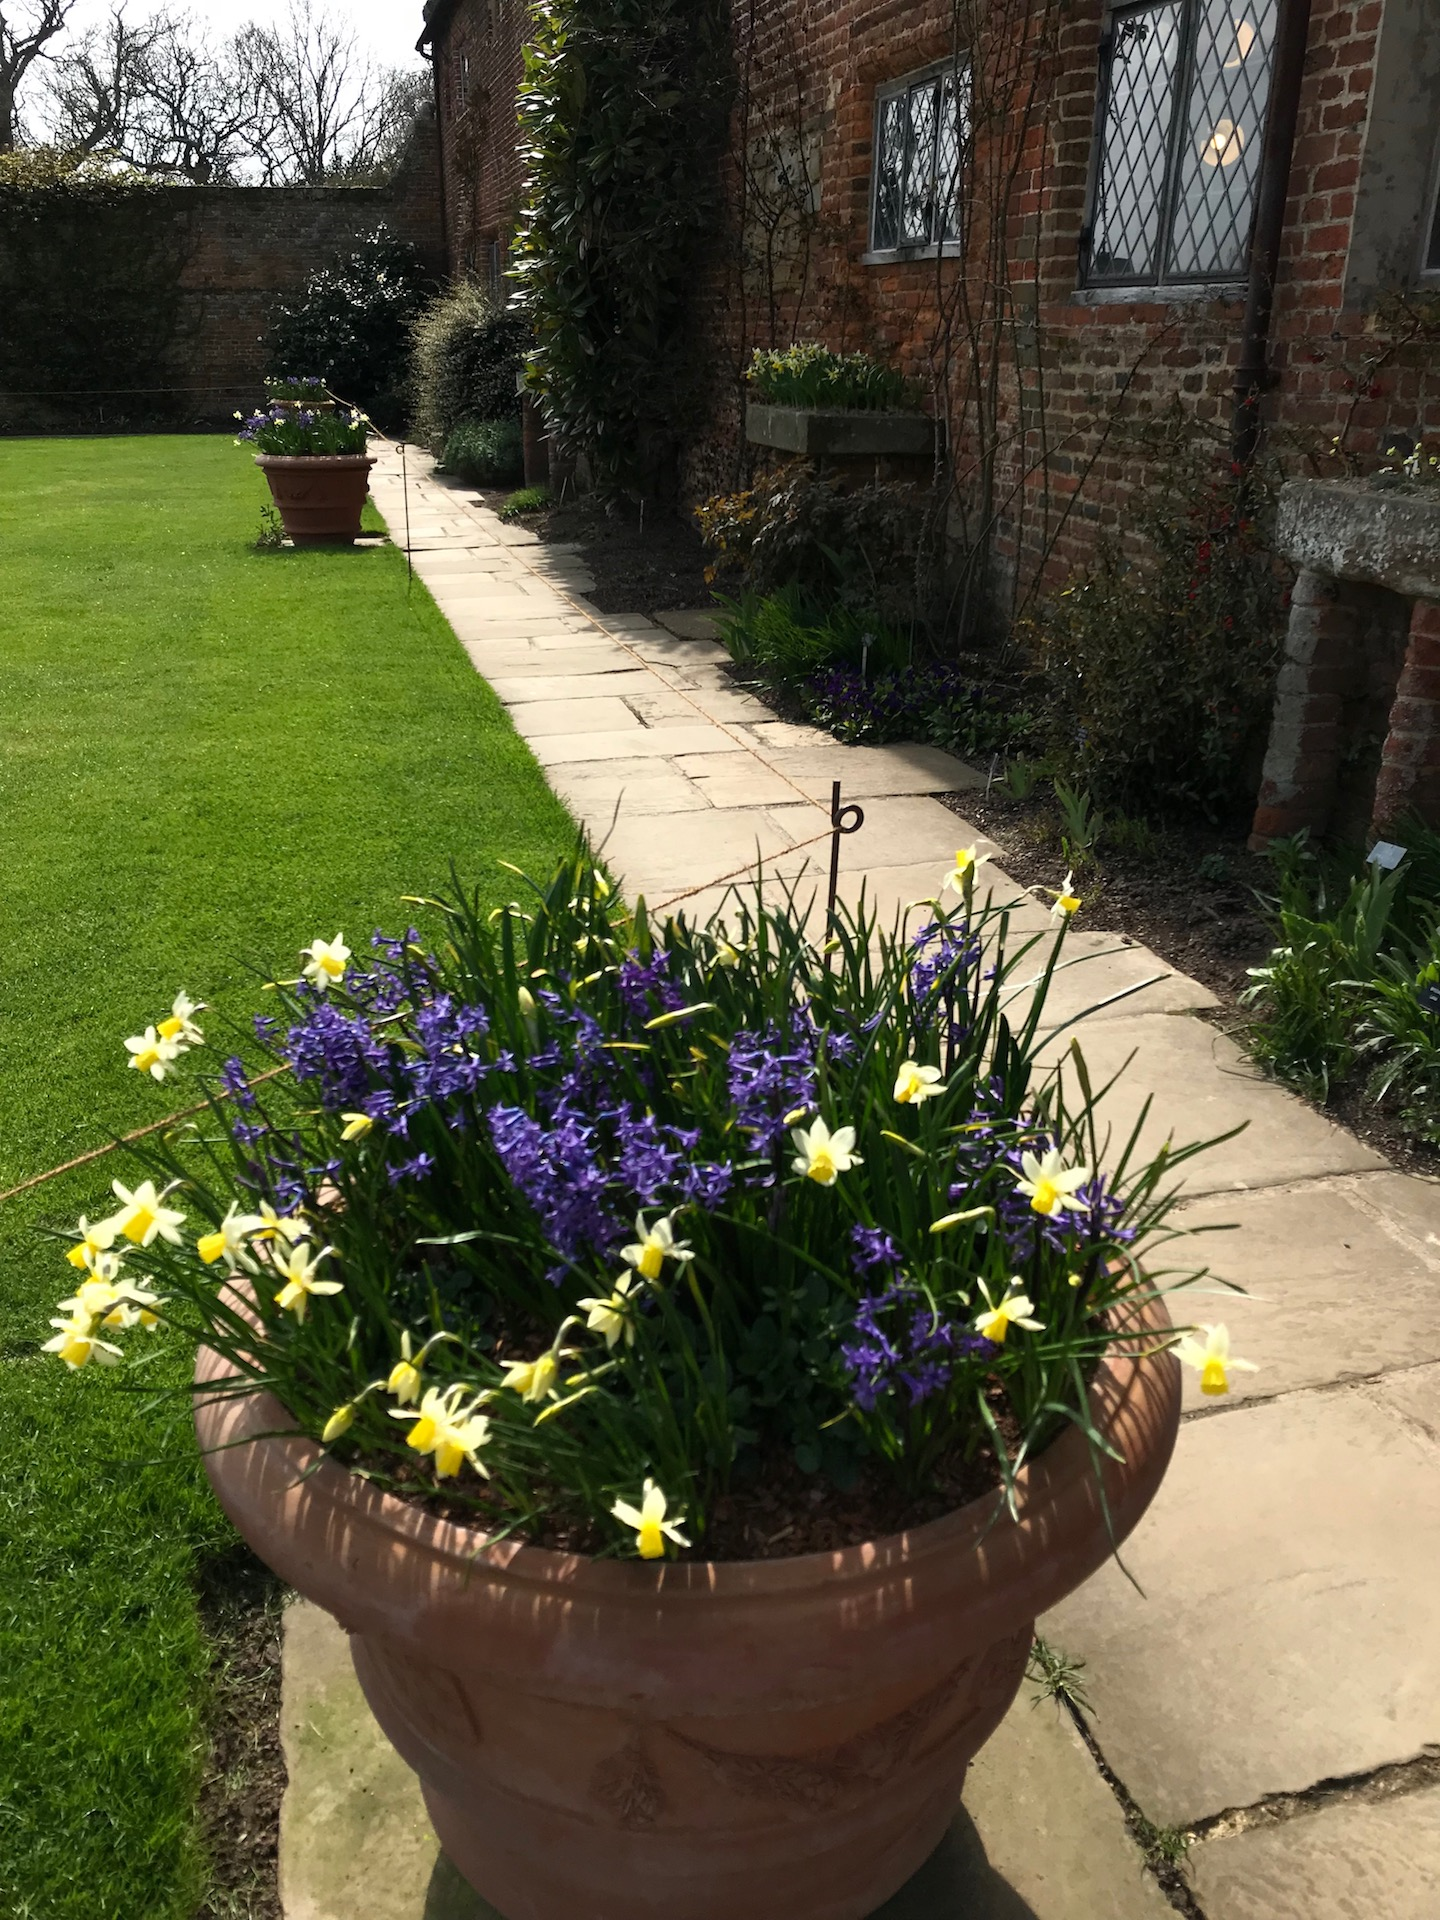 Classic English Garden Design. Garden Pots and climbing plants on a red brick wall. Good use of colour with the yellow and blues in the planter pots.